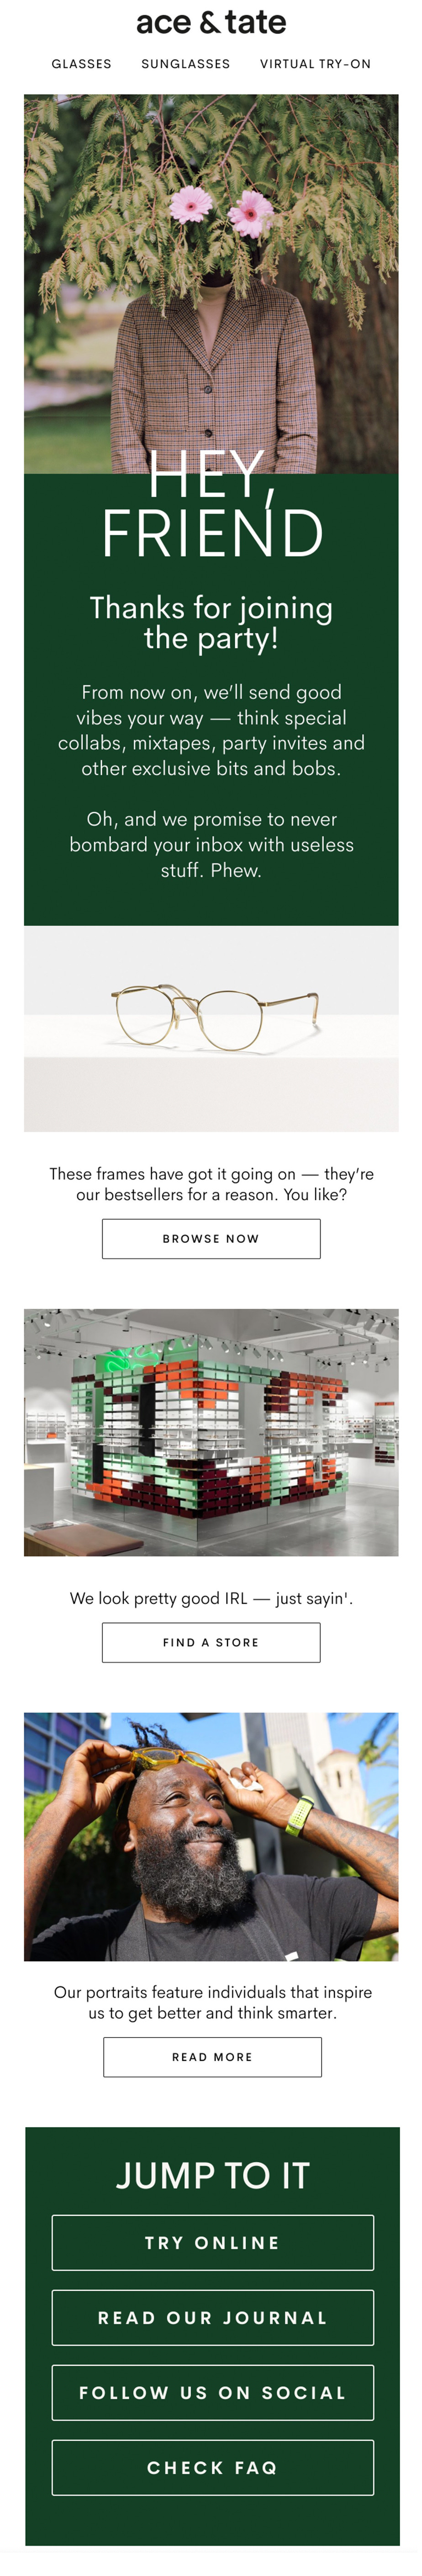 Welcome email by Ace & Tate